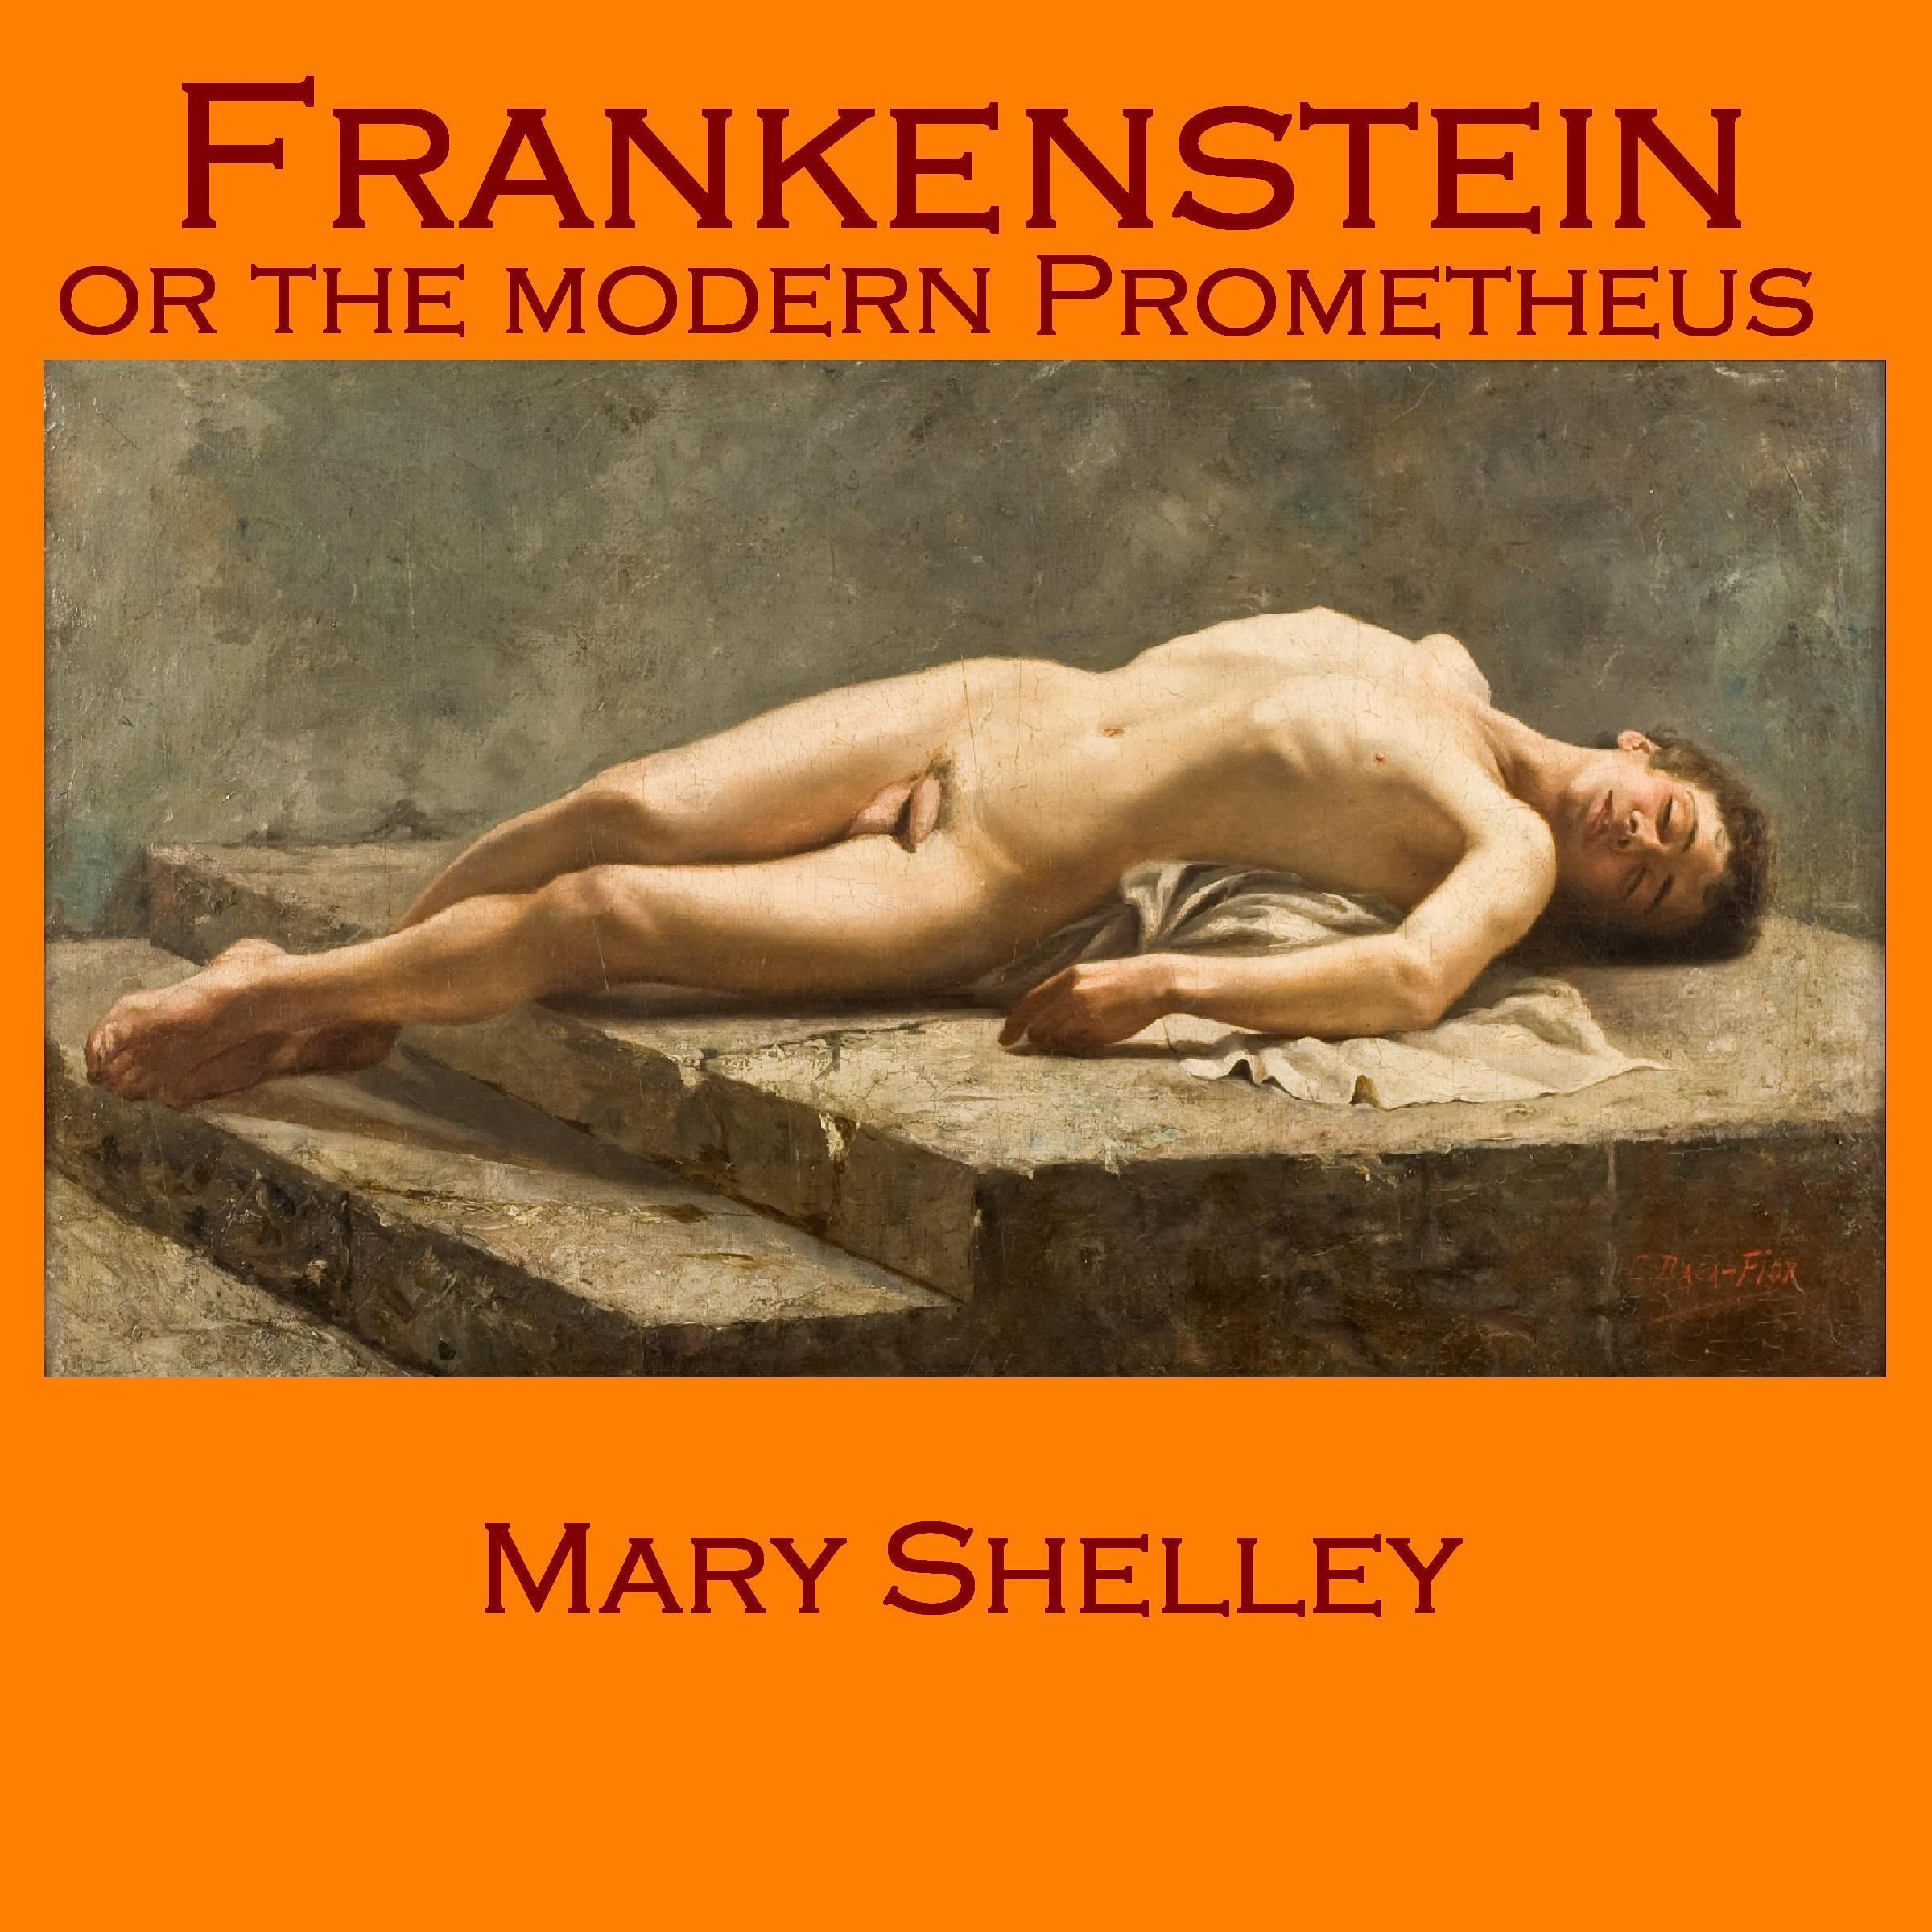 frankenstein the modern prometheus  frankenstein or, the modern prometheus, is a novel written by english author mary shelley about eccentric scientist victor frankenstein, who creates a grotesque creature in an unorthodox scientific experiment shelley started writing the story when she was eighteen, and the.